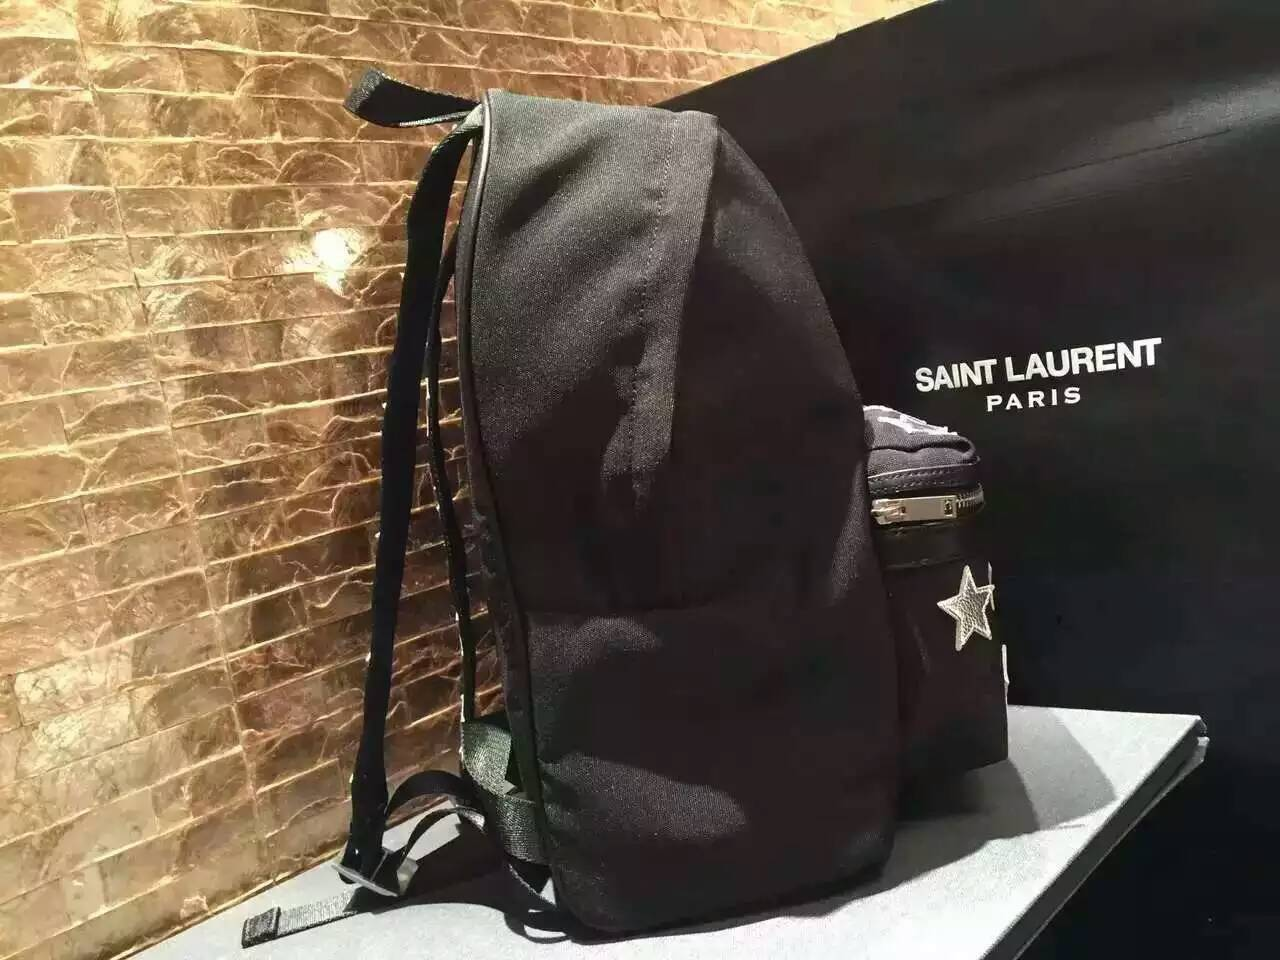 2016 Saint Laurent Bags Cheap Sale-Saint Laurent Classic Hunting California Backpack in Black Nylon and Silver Metallic Leather